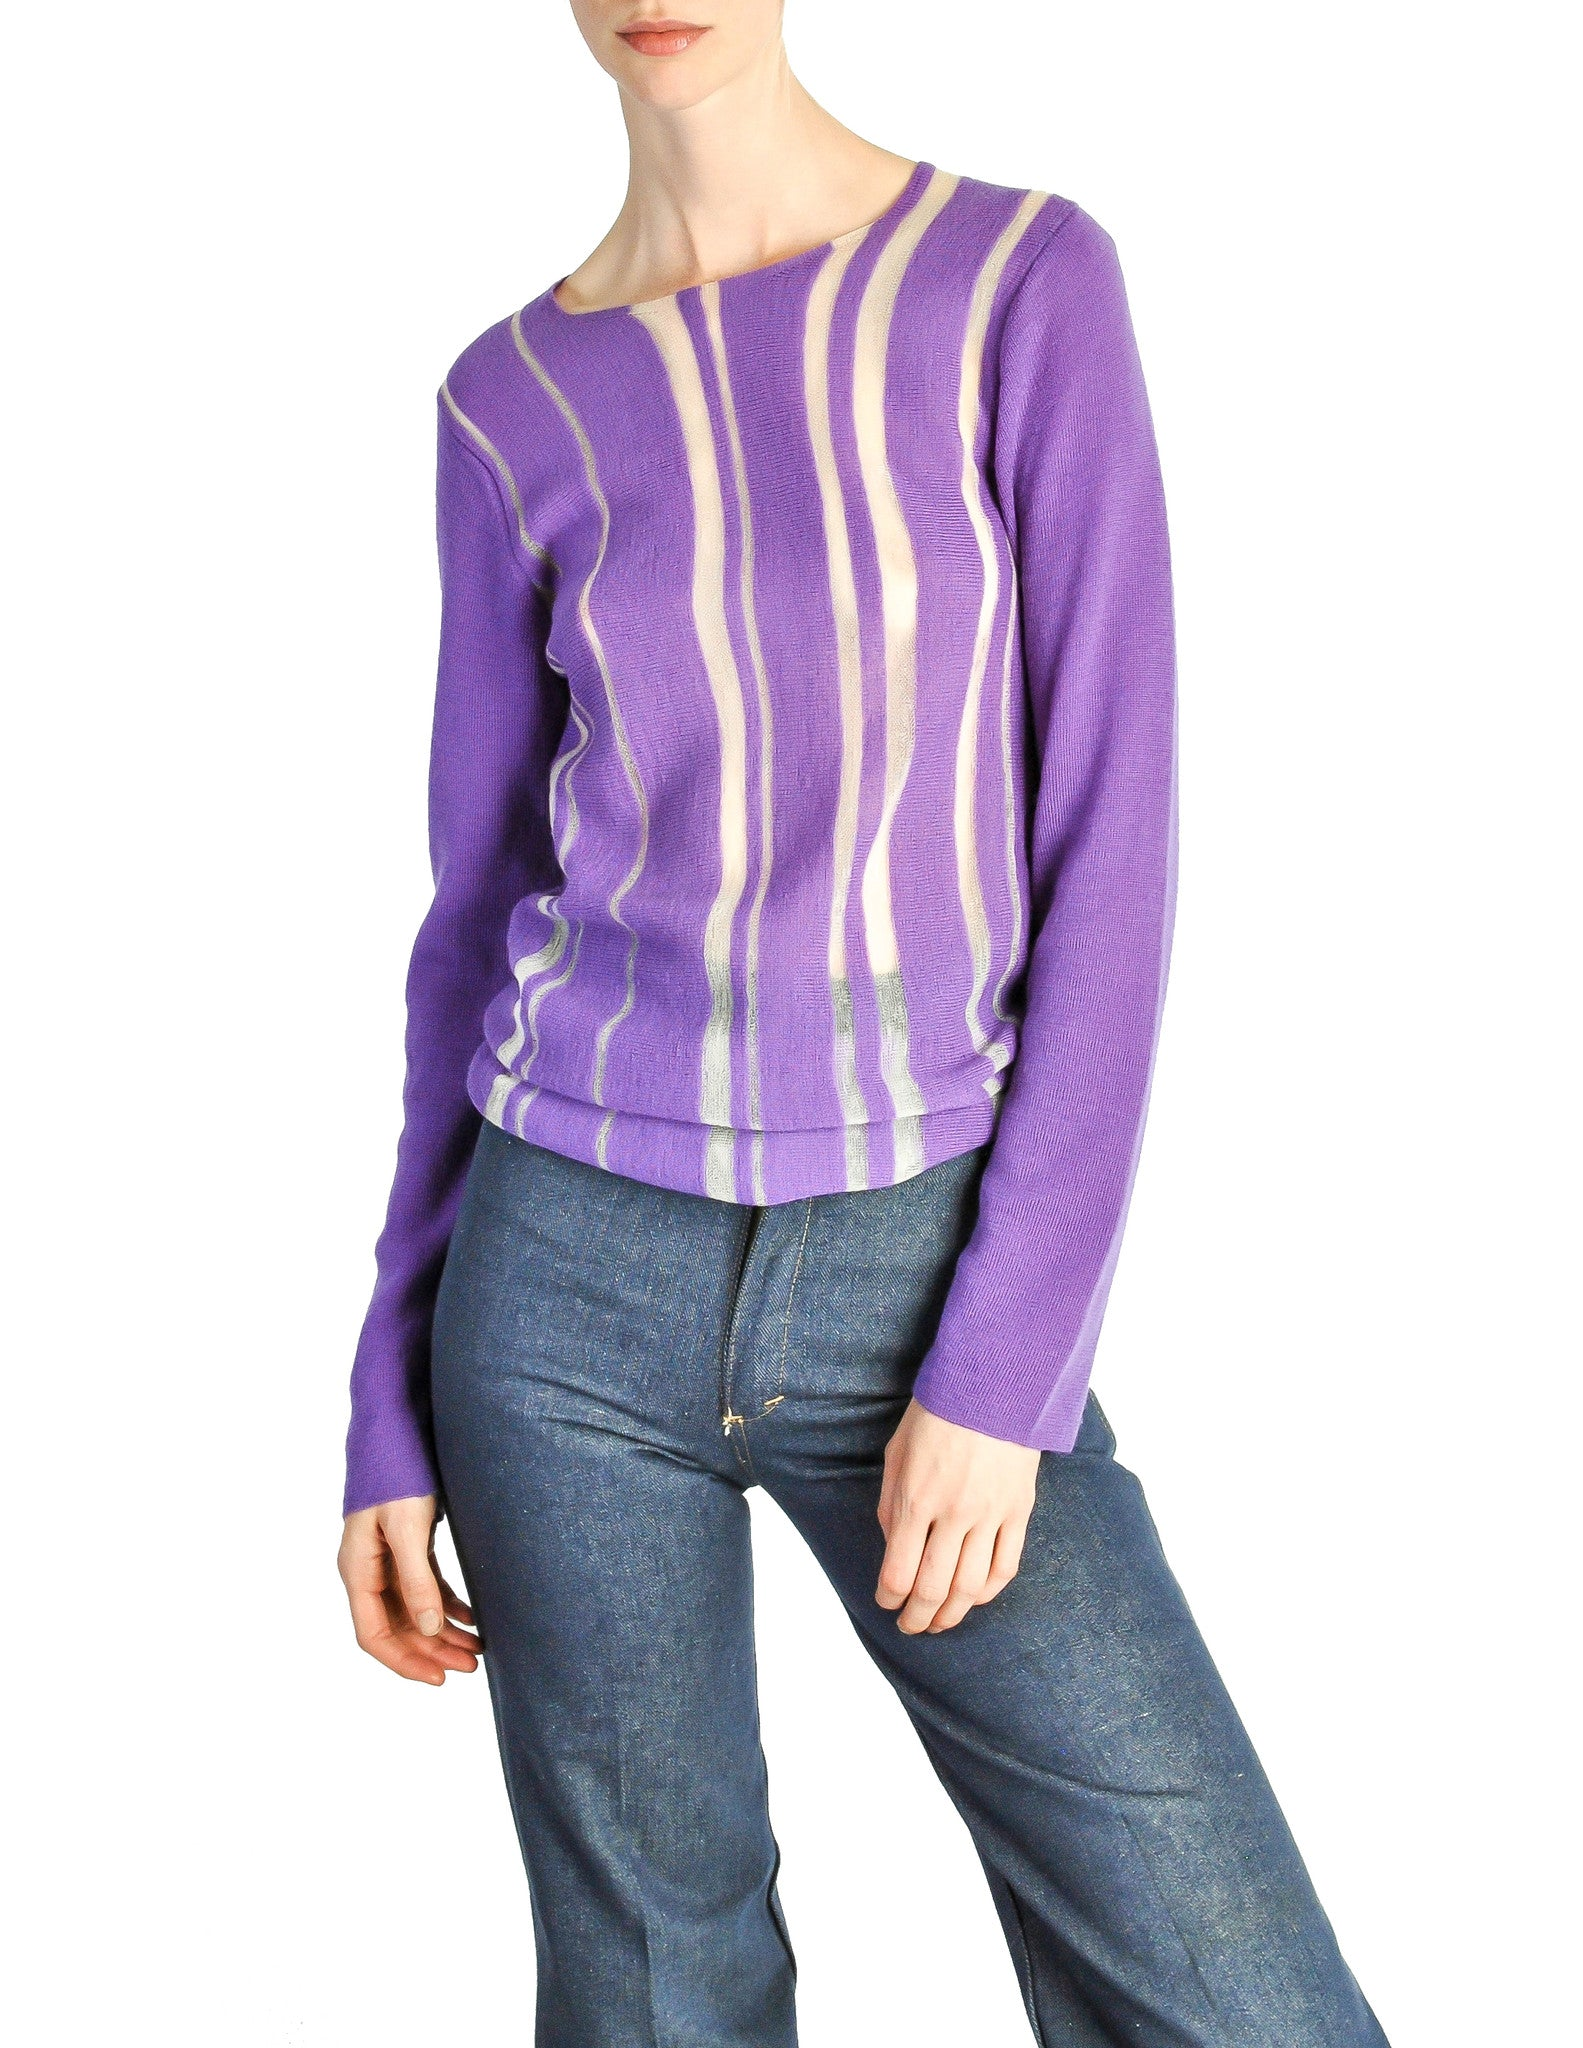 Comme des Garçons Vintage Purple & Sheer Mesh Striped Sweater - Amarcord Vintage Fashion  - 1